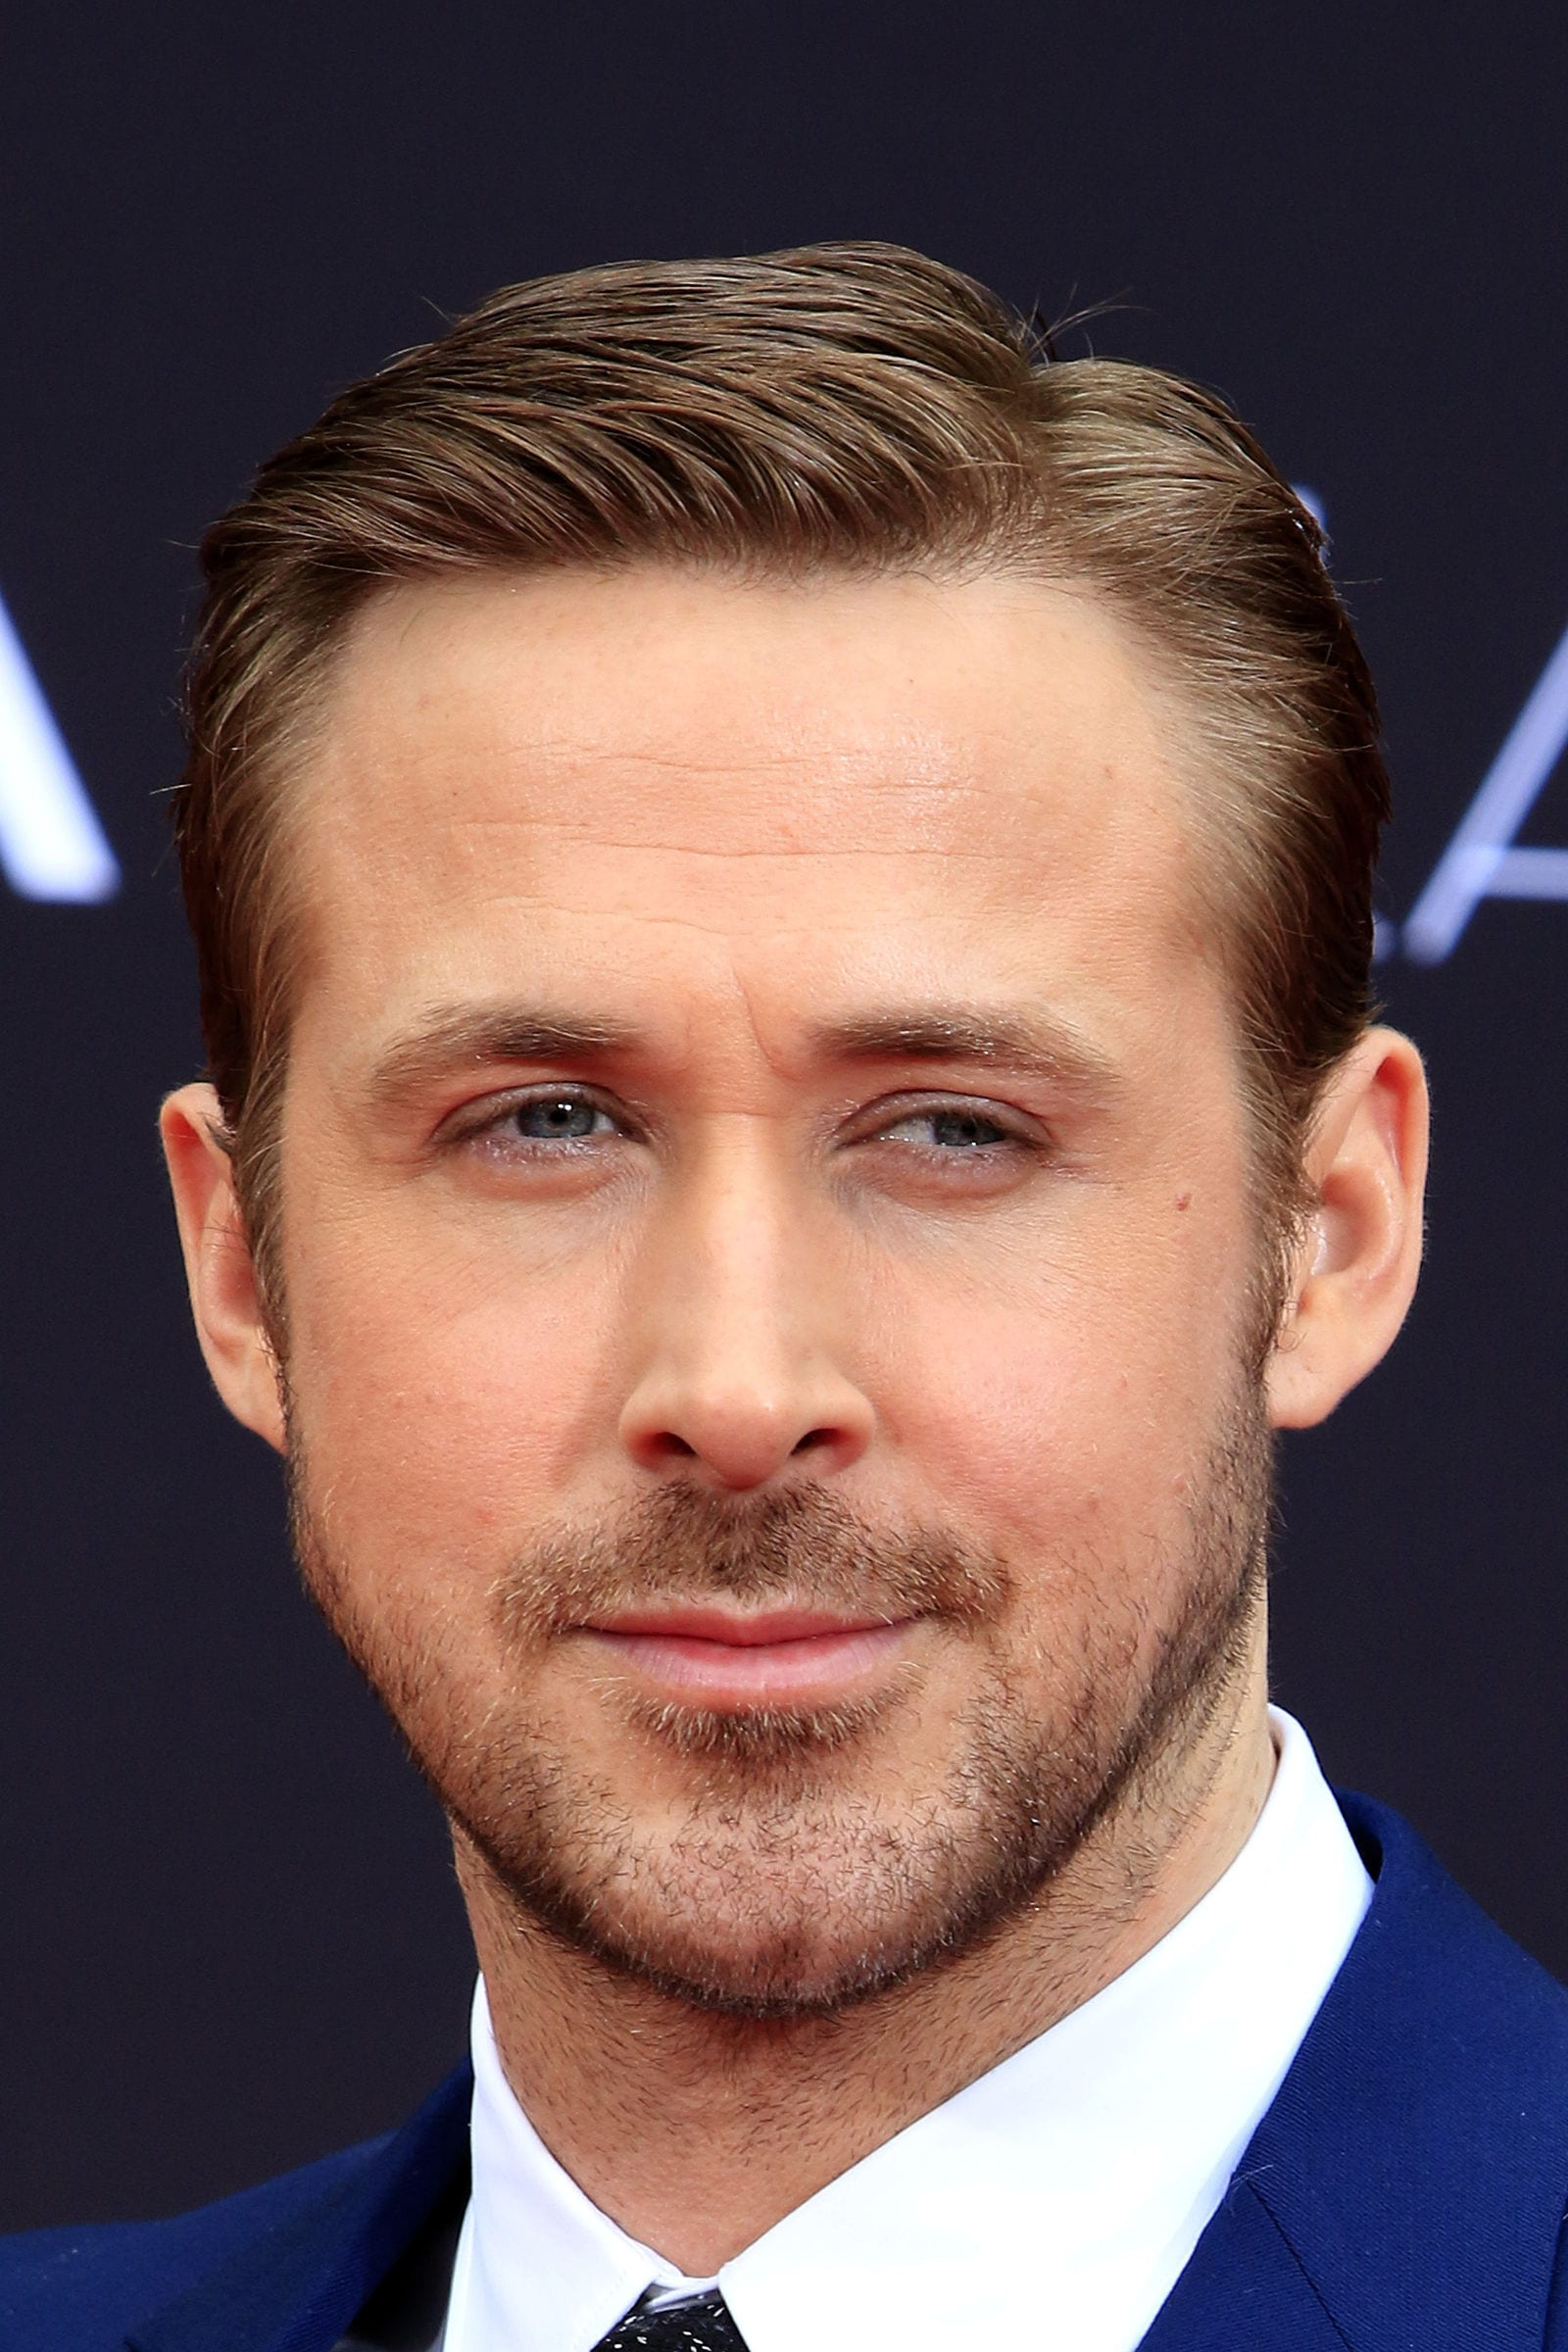 Ryan Gosling with a classic side part hairstyle